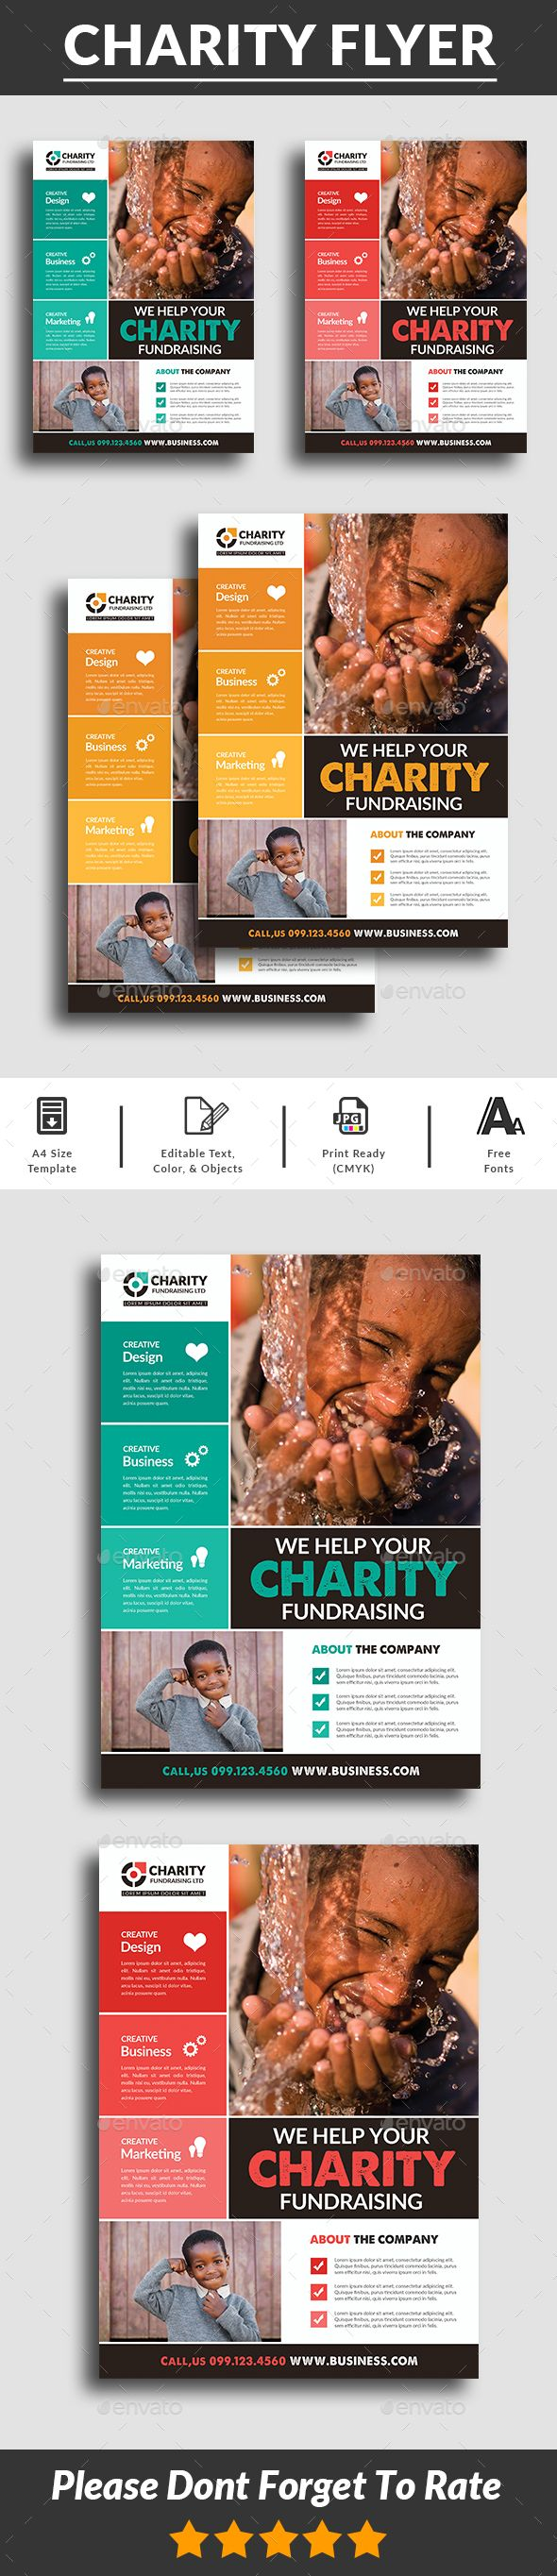 charity flyer templates psd flyer templates pinterest flyer